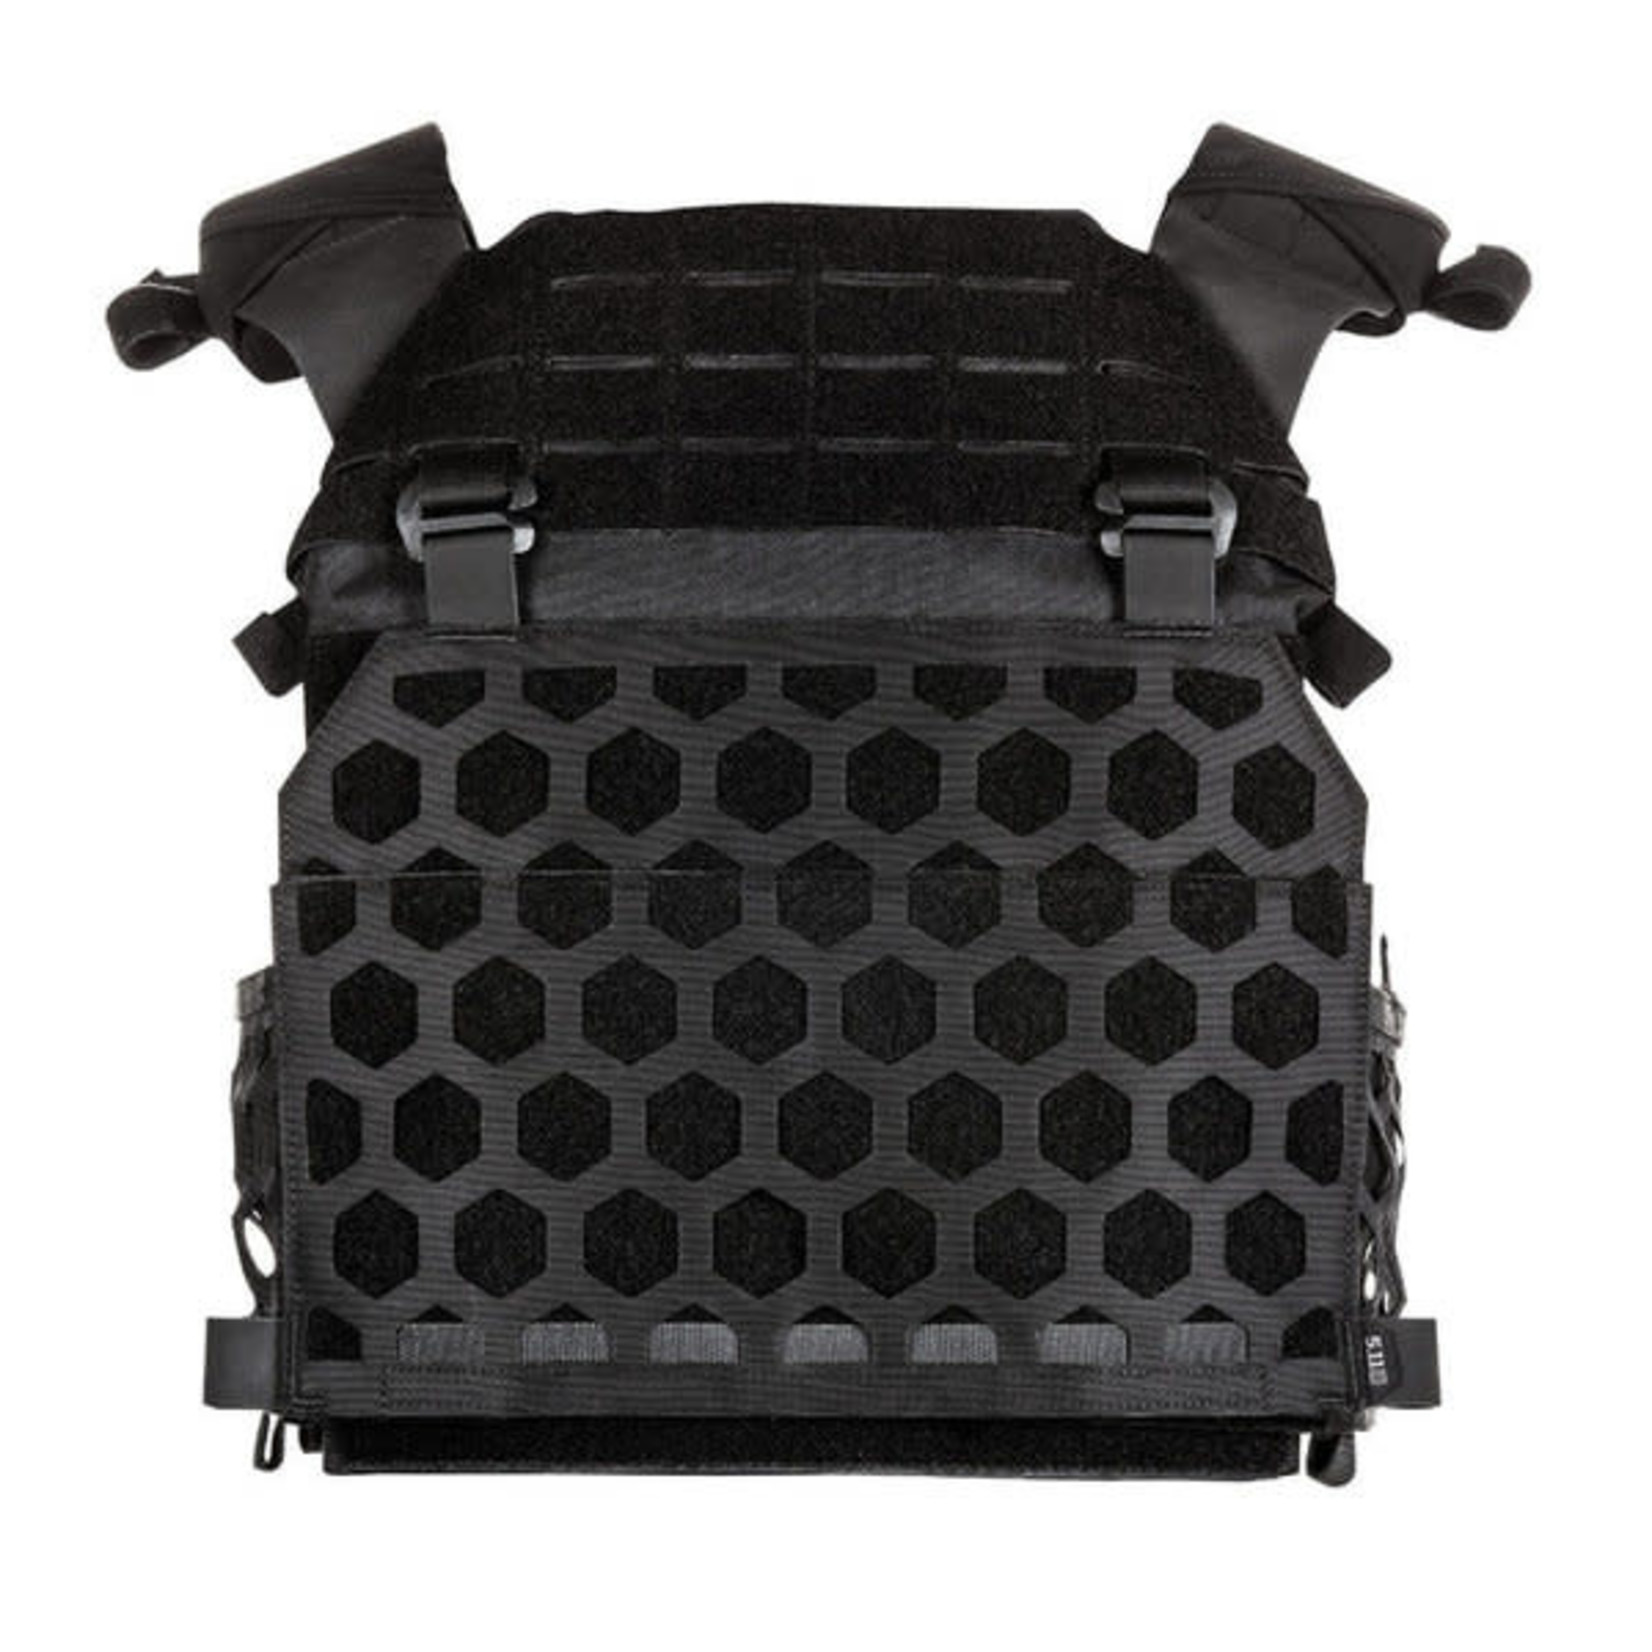 5.11 Tactical 5.11 All Missions Plate Carrier-Size: L/XL